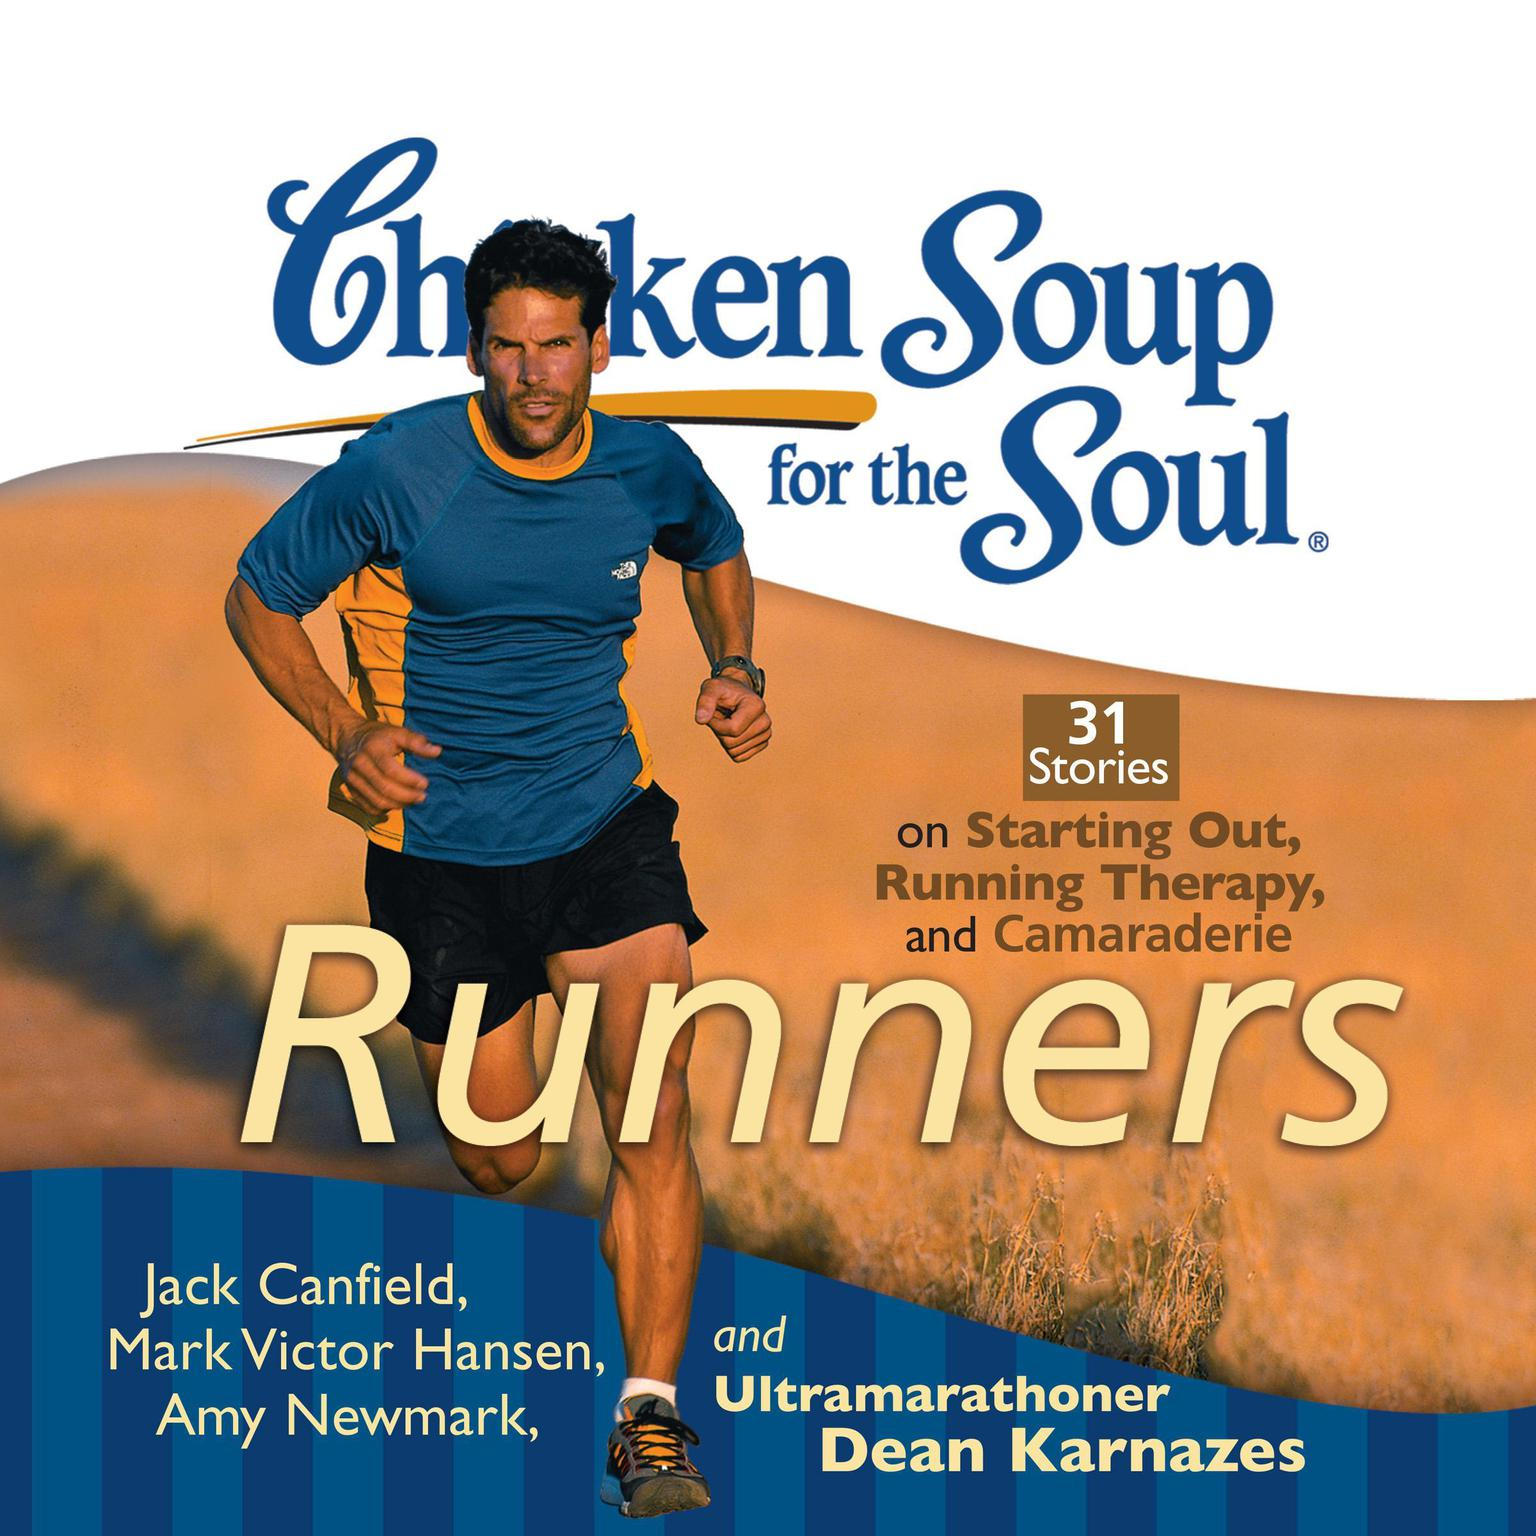 Printable Chicken Soup for the Soul: Runners: 31 Stories on Starting Out, Running Therapy, and Camaraderie Audiobook Cover Art